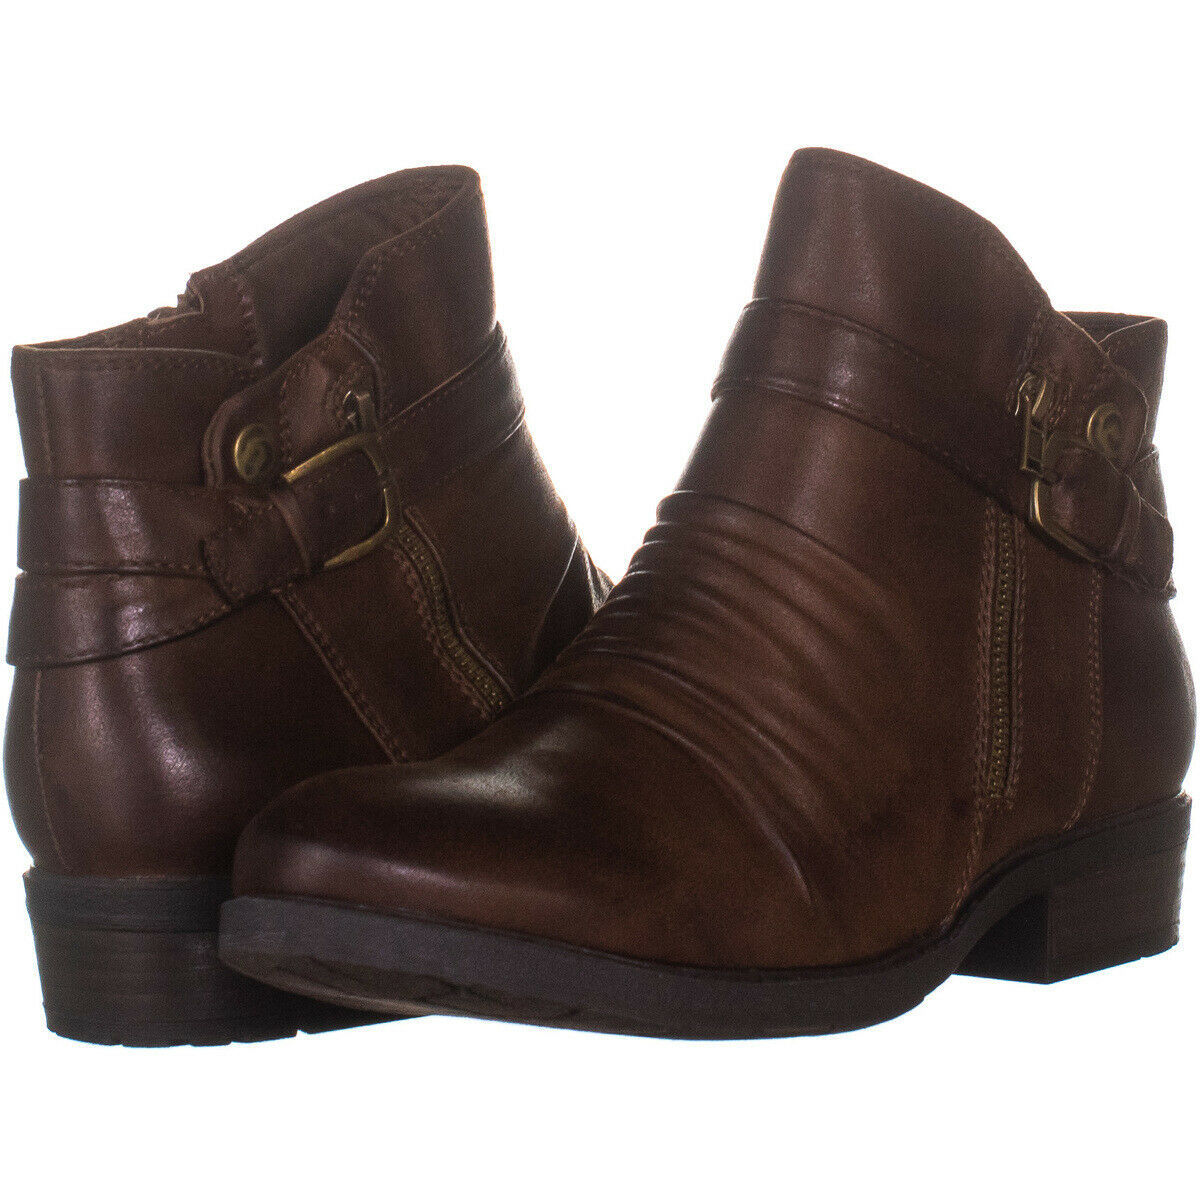 Primary image for BareTraps Yasmyn Ankle Boots, Brush Brown 531, Brush Brown, 8 US